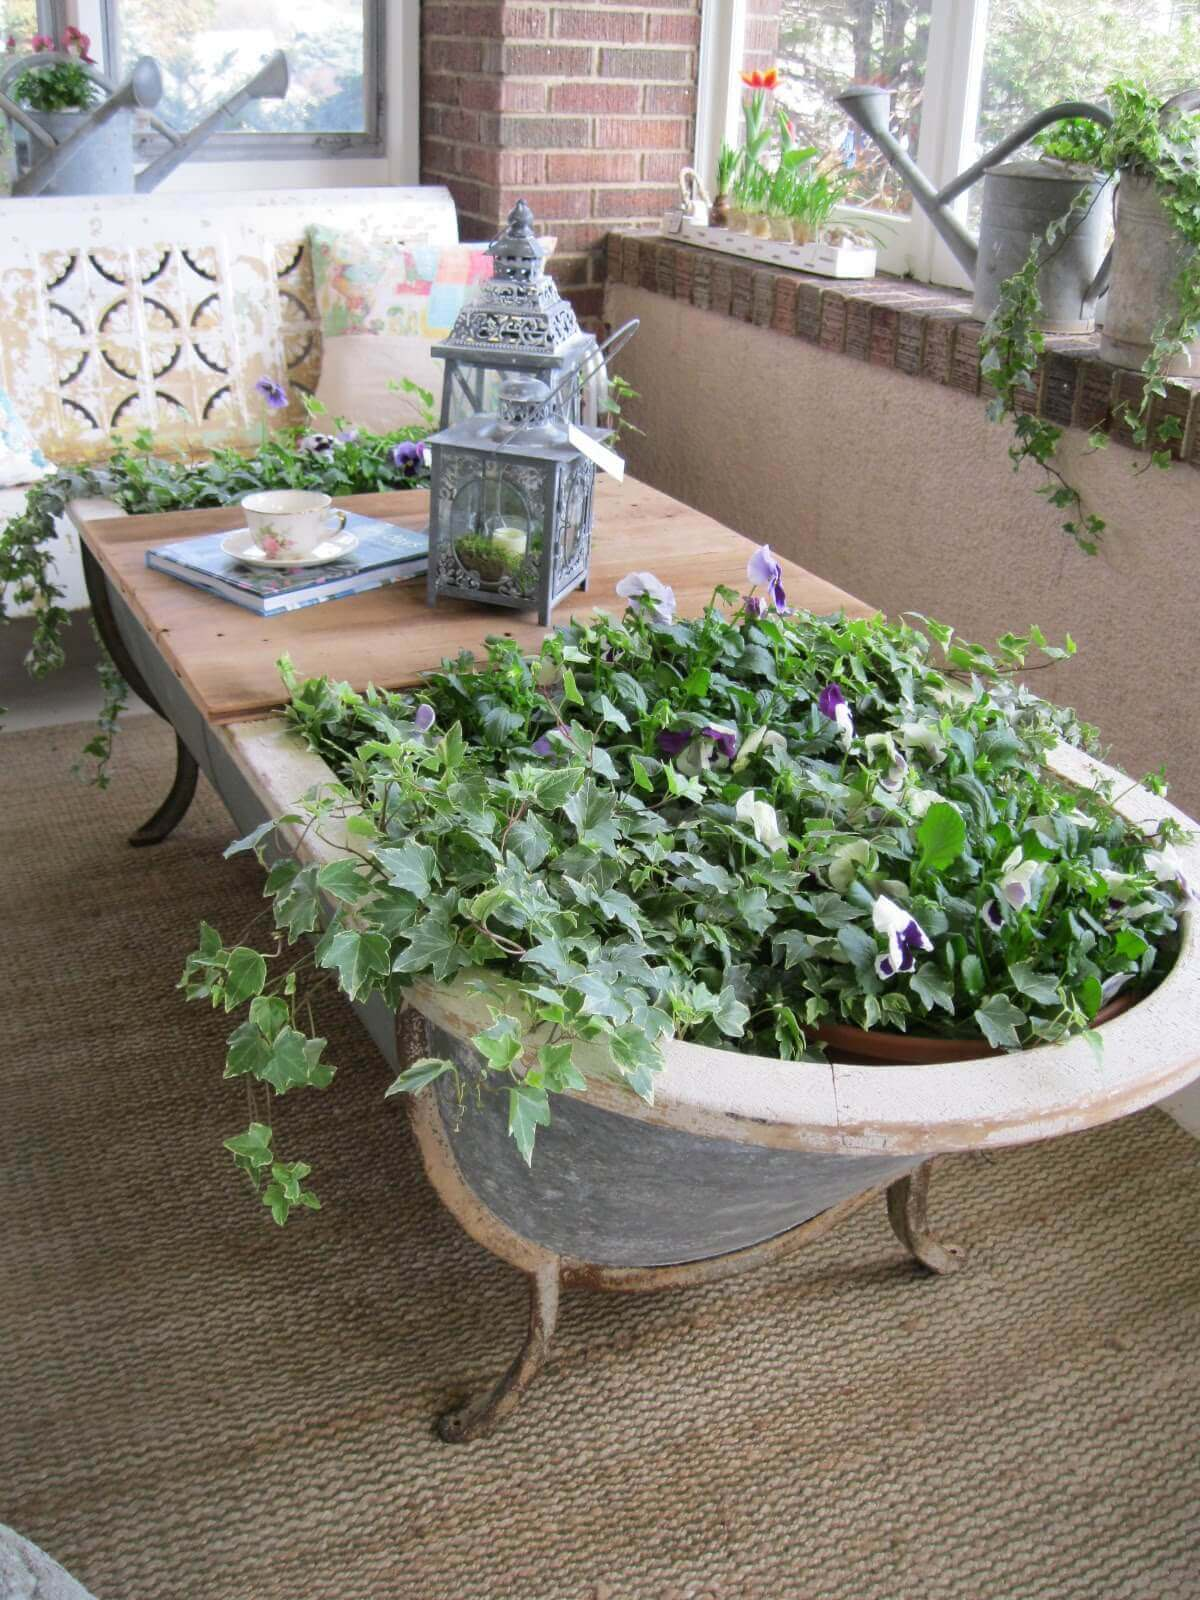 Cast Iron Tub with Pansies and Ivy